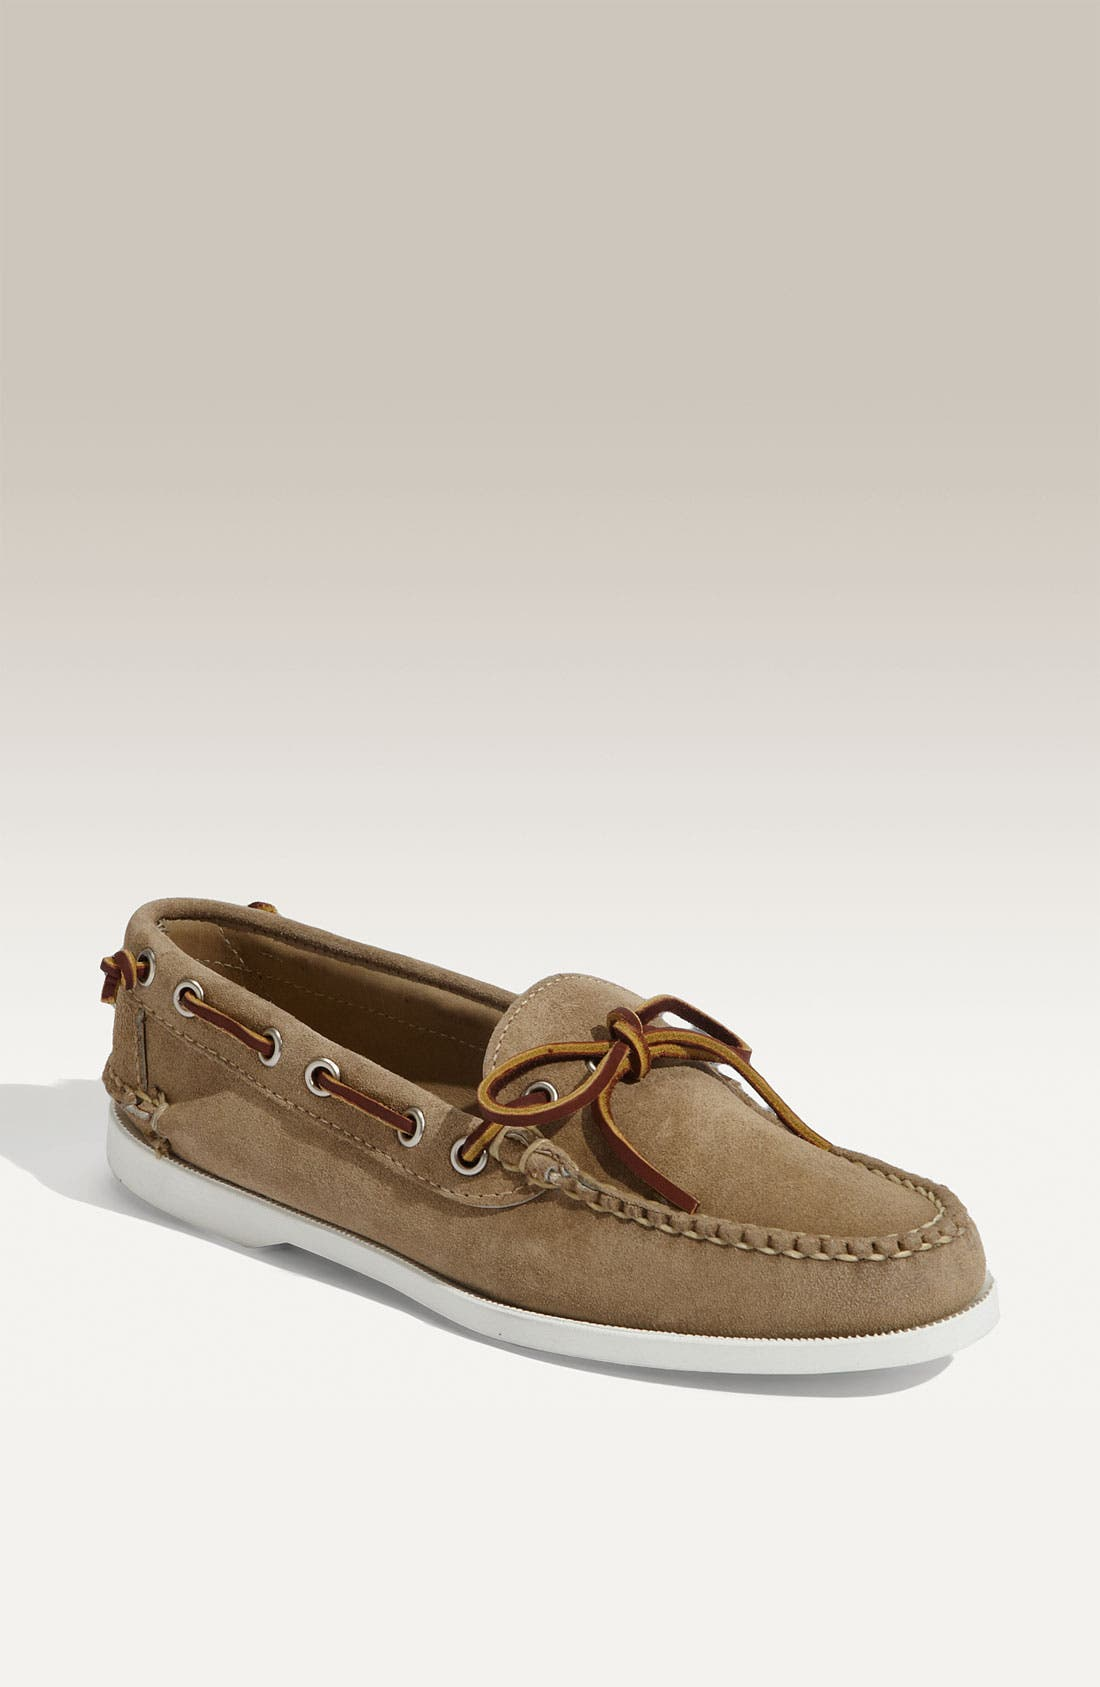 Alternate Image 1 Selected - Ralph Lauren Collection 'Theodora' Boat Shoe